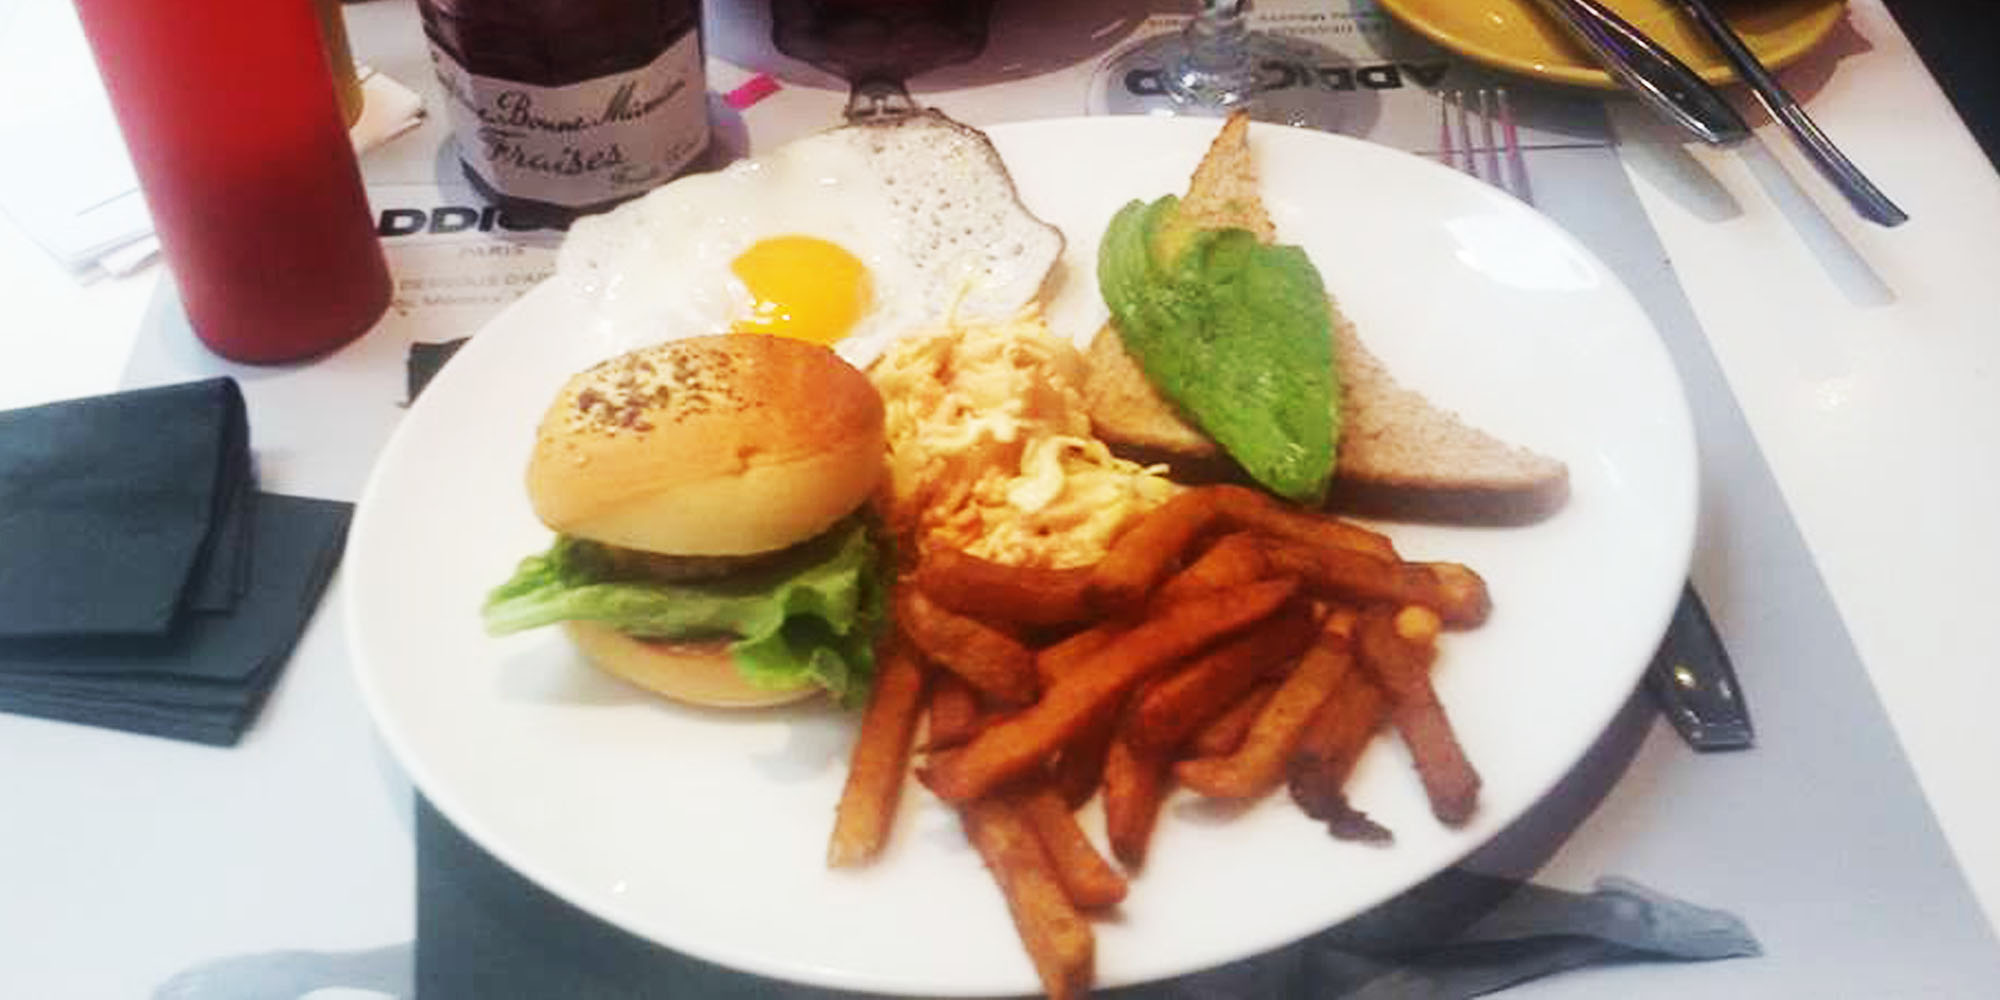 Brunch Tata Burger (75004 Paris)